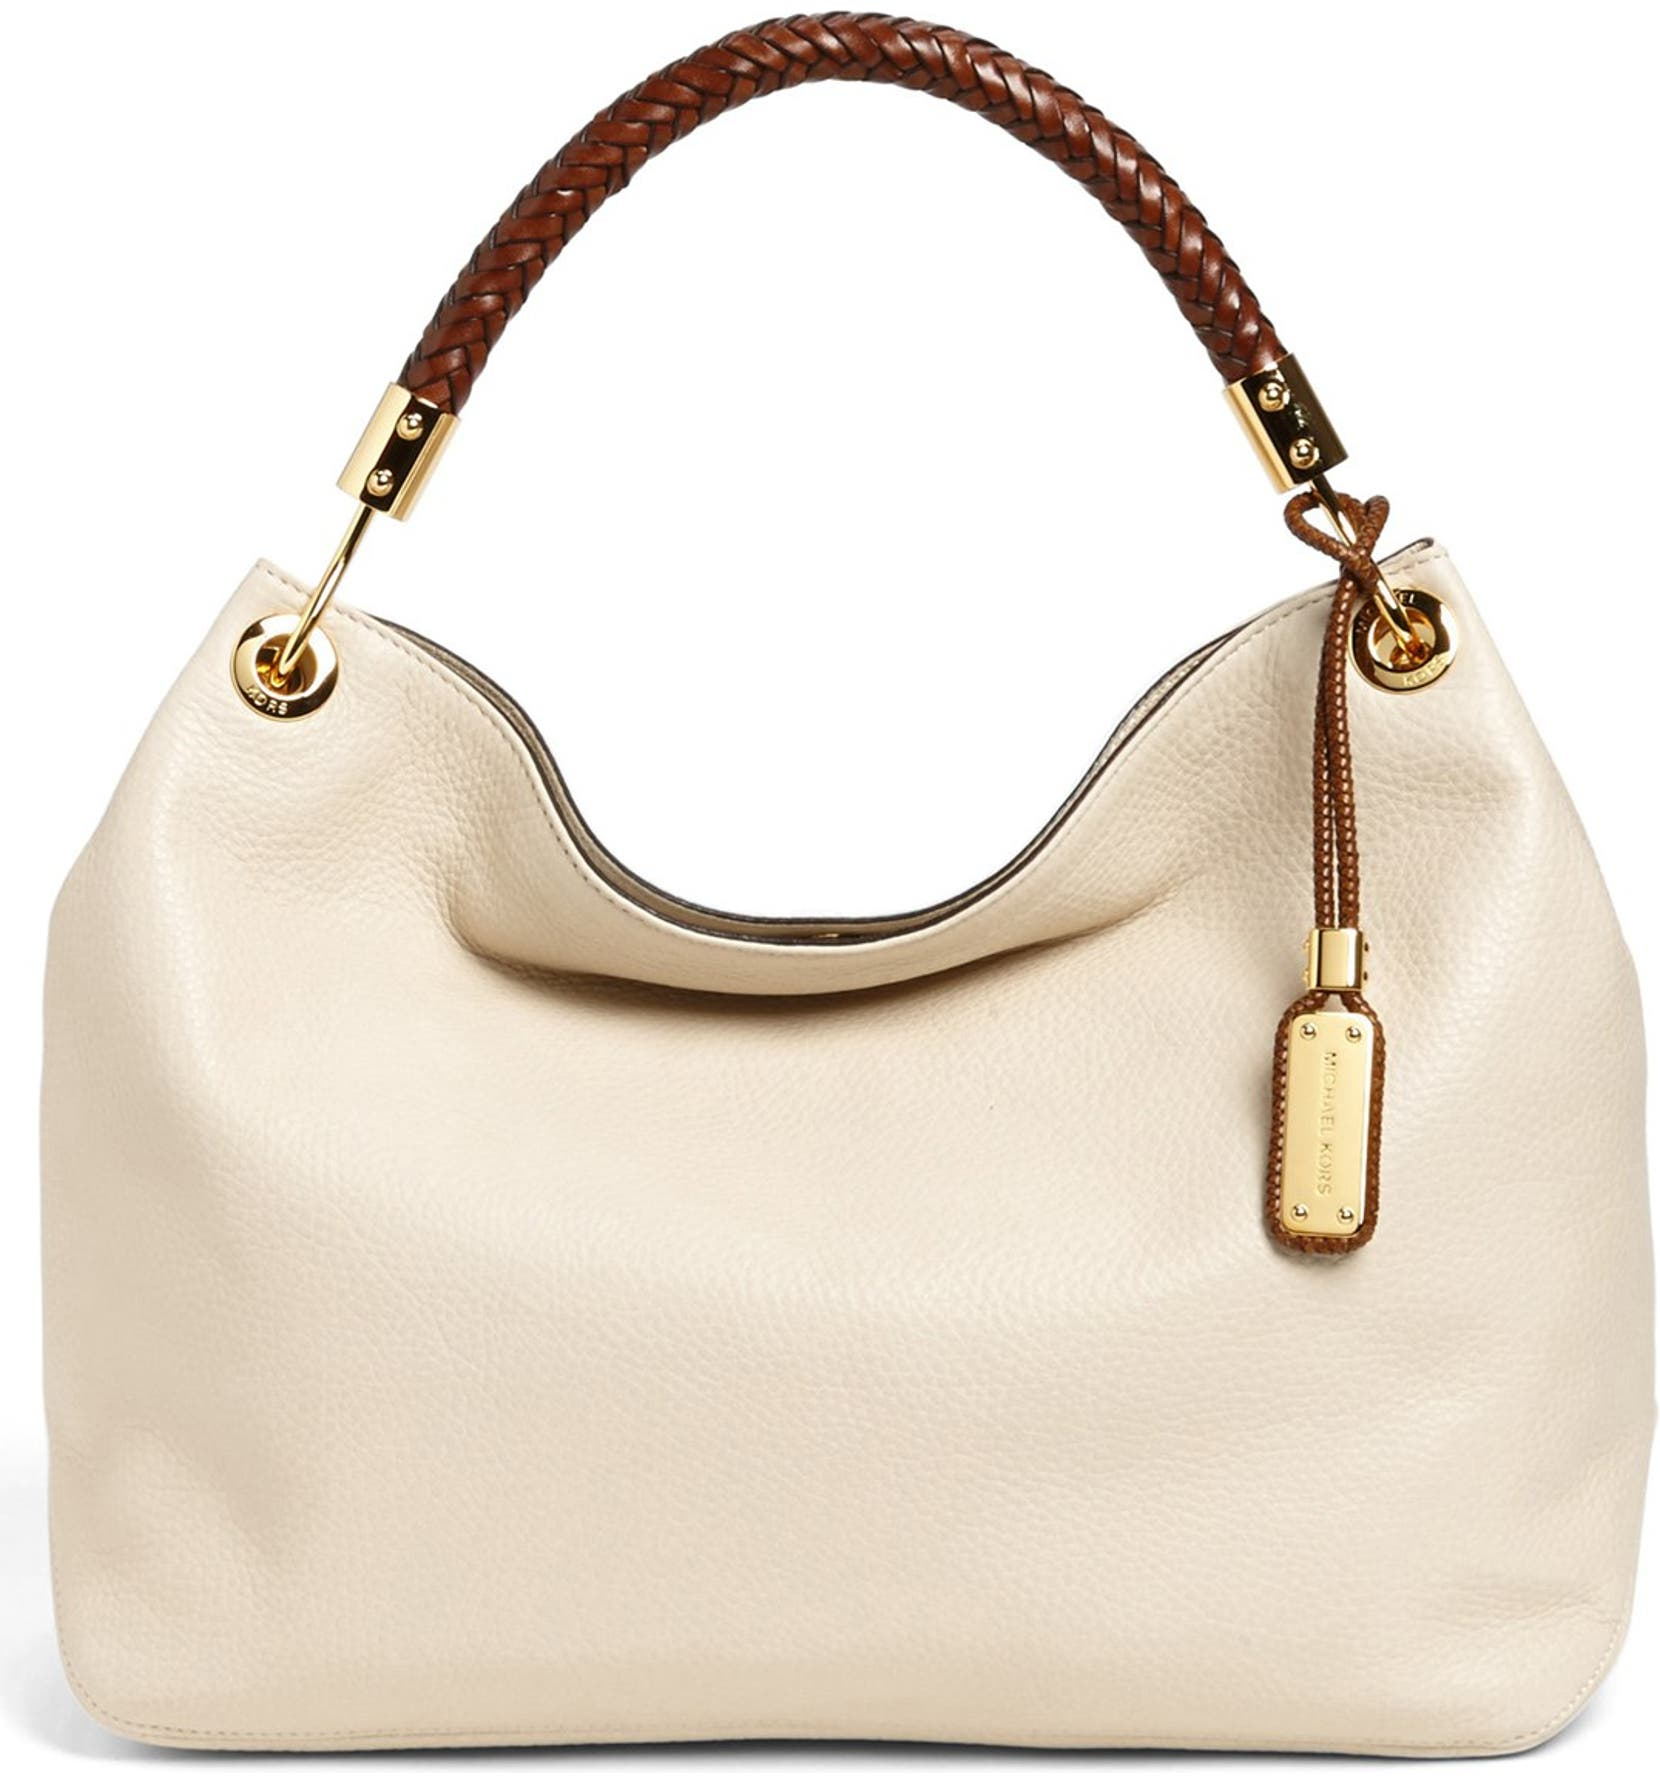 5728de3d1800 Michael Kors  Large Skorpios  Leather Shoulder Bag